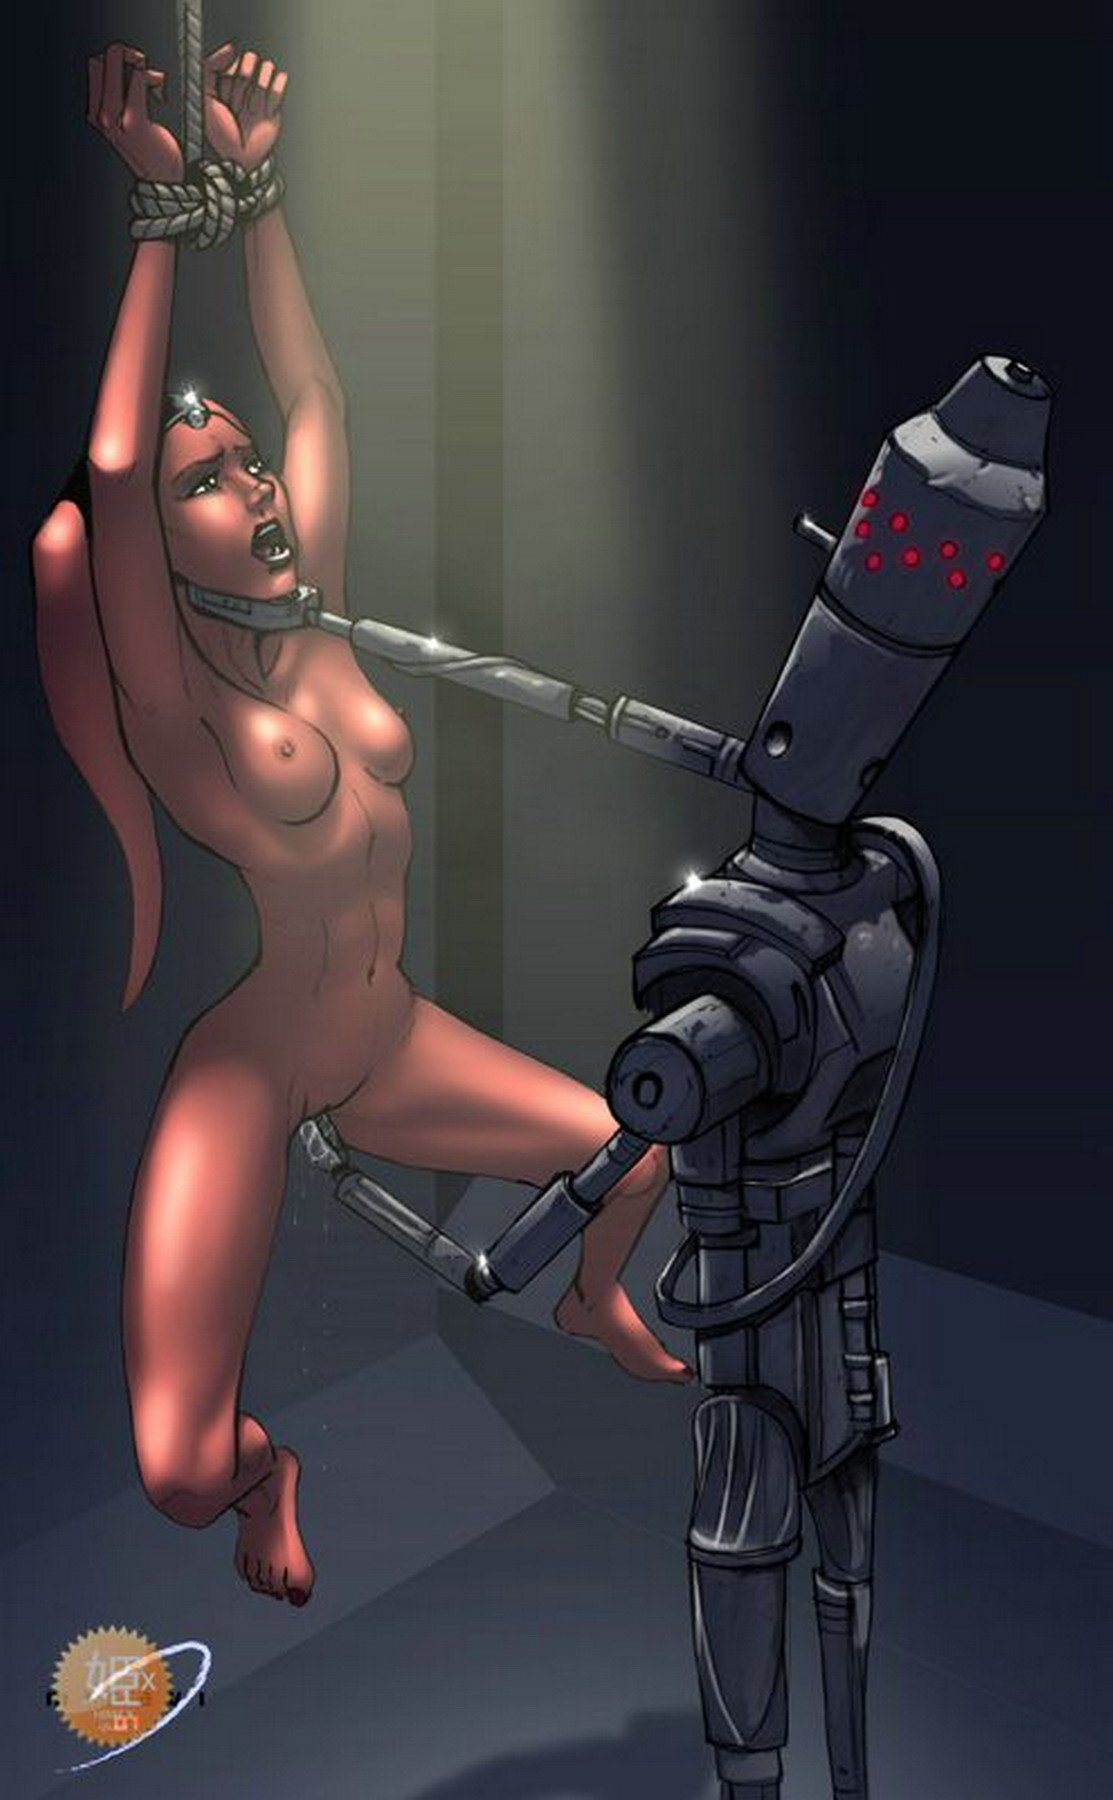 Hot star wars porn naked clips